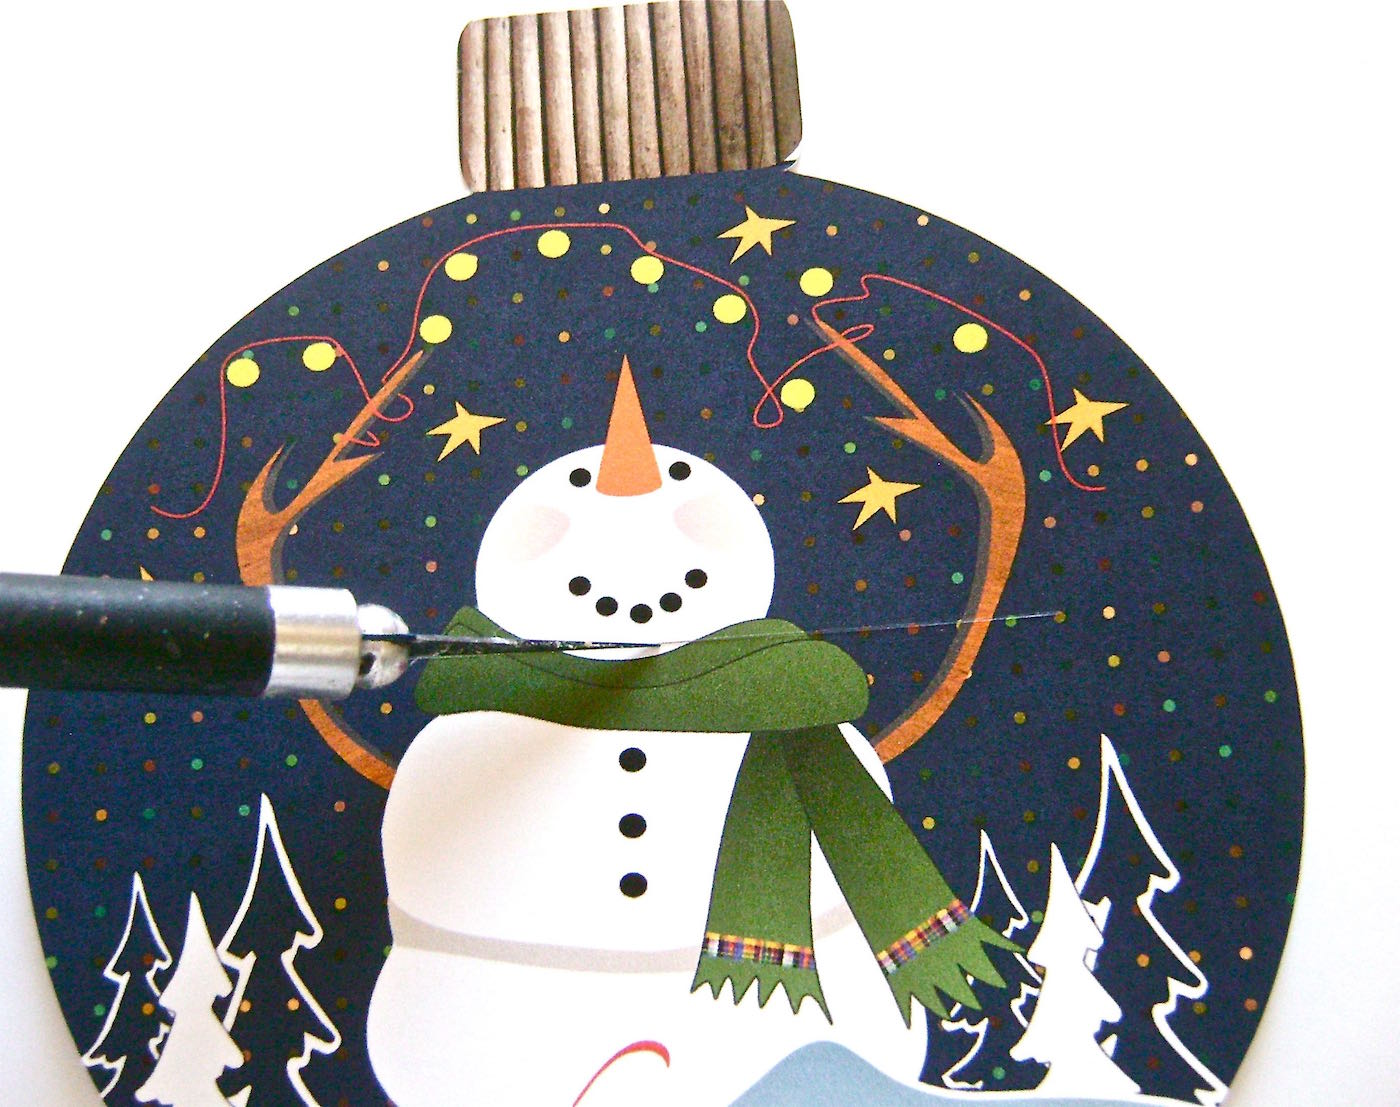 """step 3 - With a craft knife, cut a 2.50"""" wide horizontal slit under the snowman's smile to insert the card. Silhouette users skip this step."""